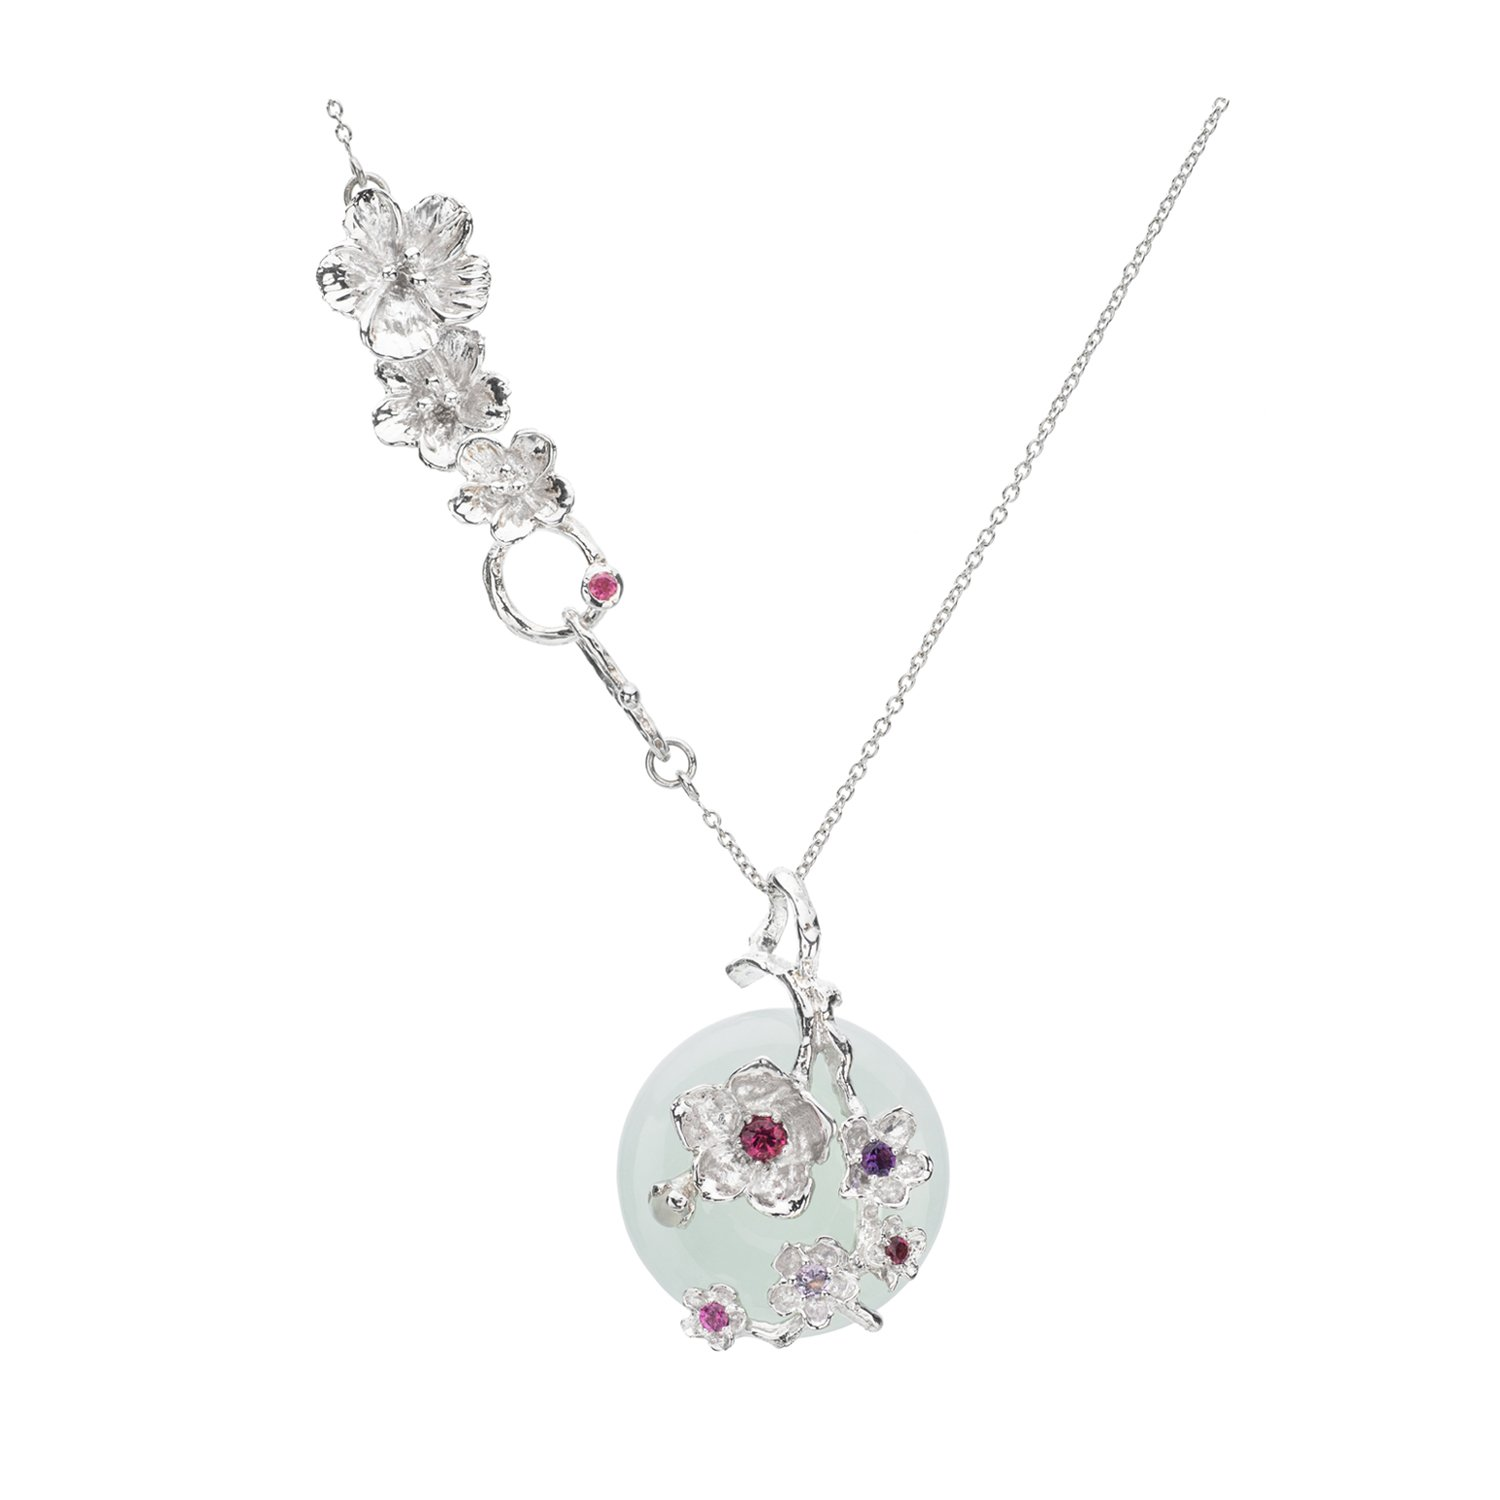 Choo Yilin Cherry Blossom Branch Necklace